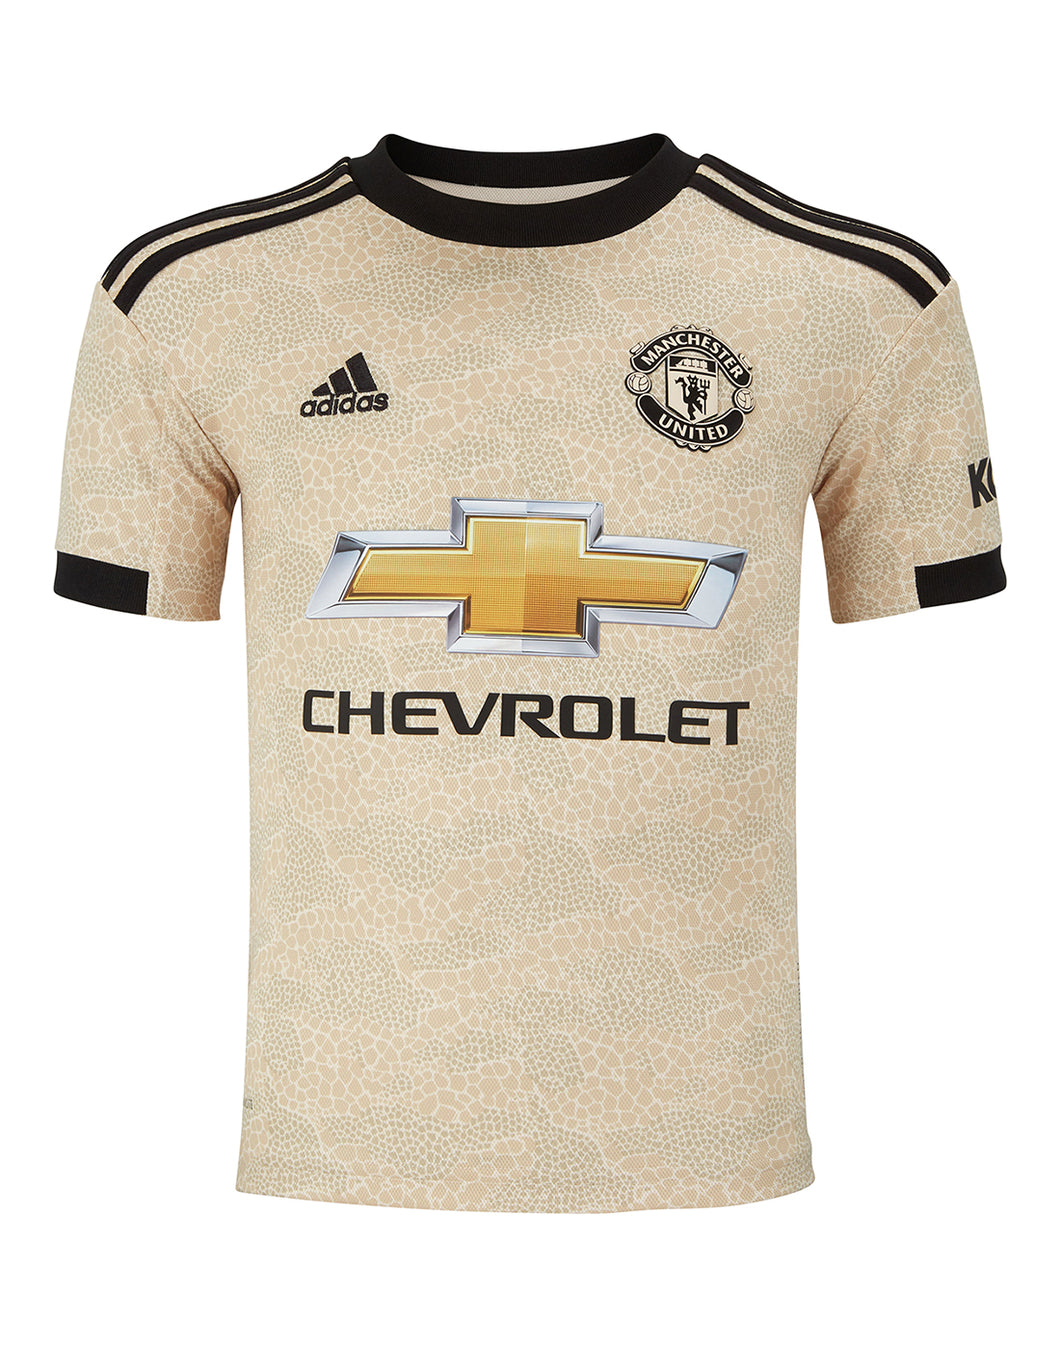 Man United Away 19/20 Kit- Top & Bottom